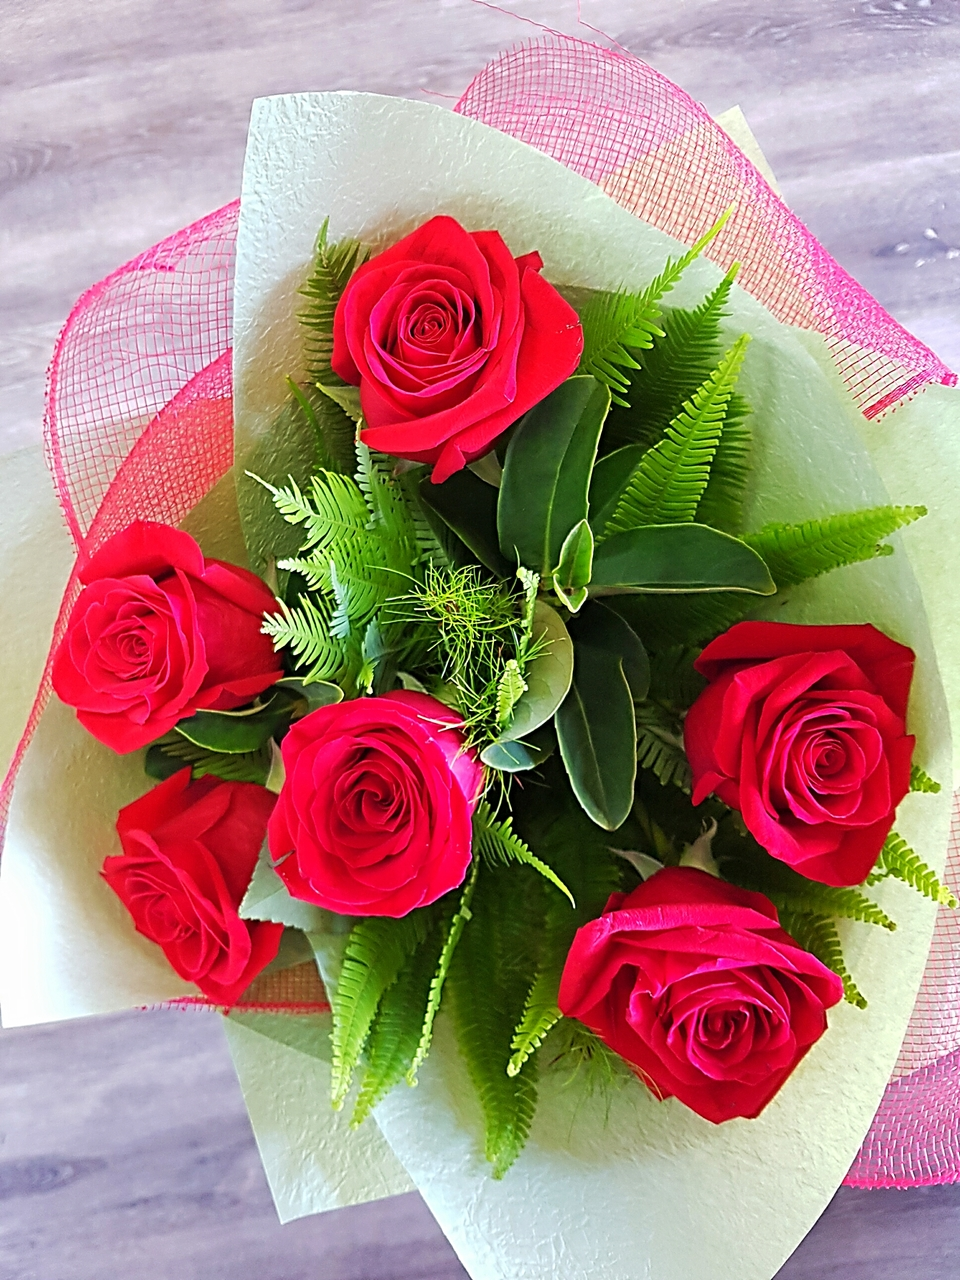 BOUQUET OF SIX RED ROSES AND COMPLEMENTING GREENERY